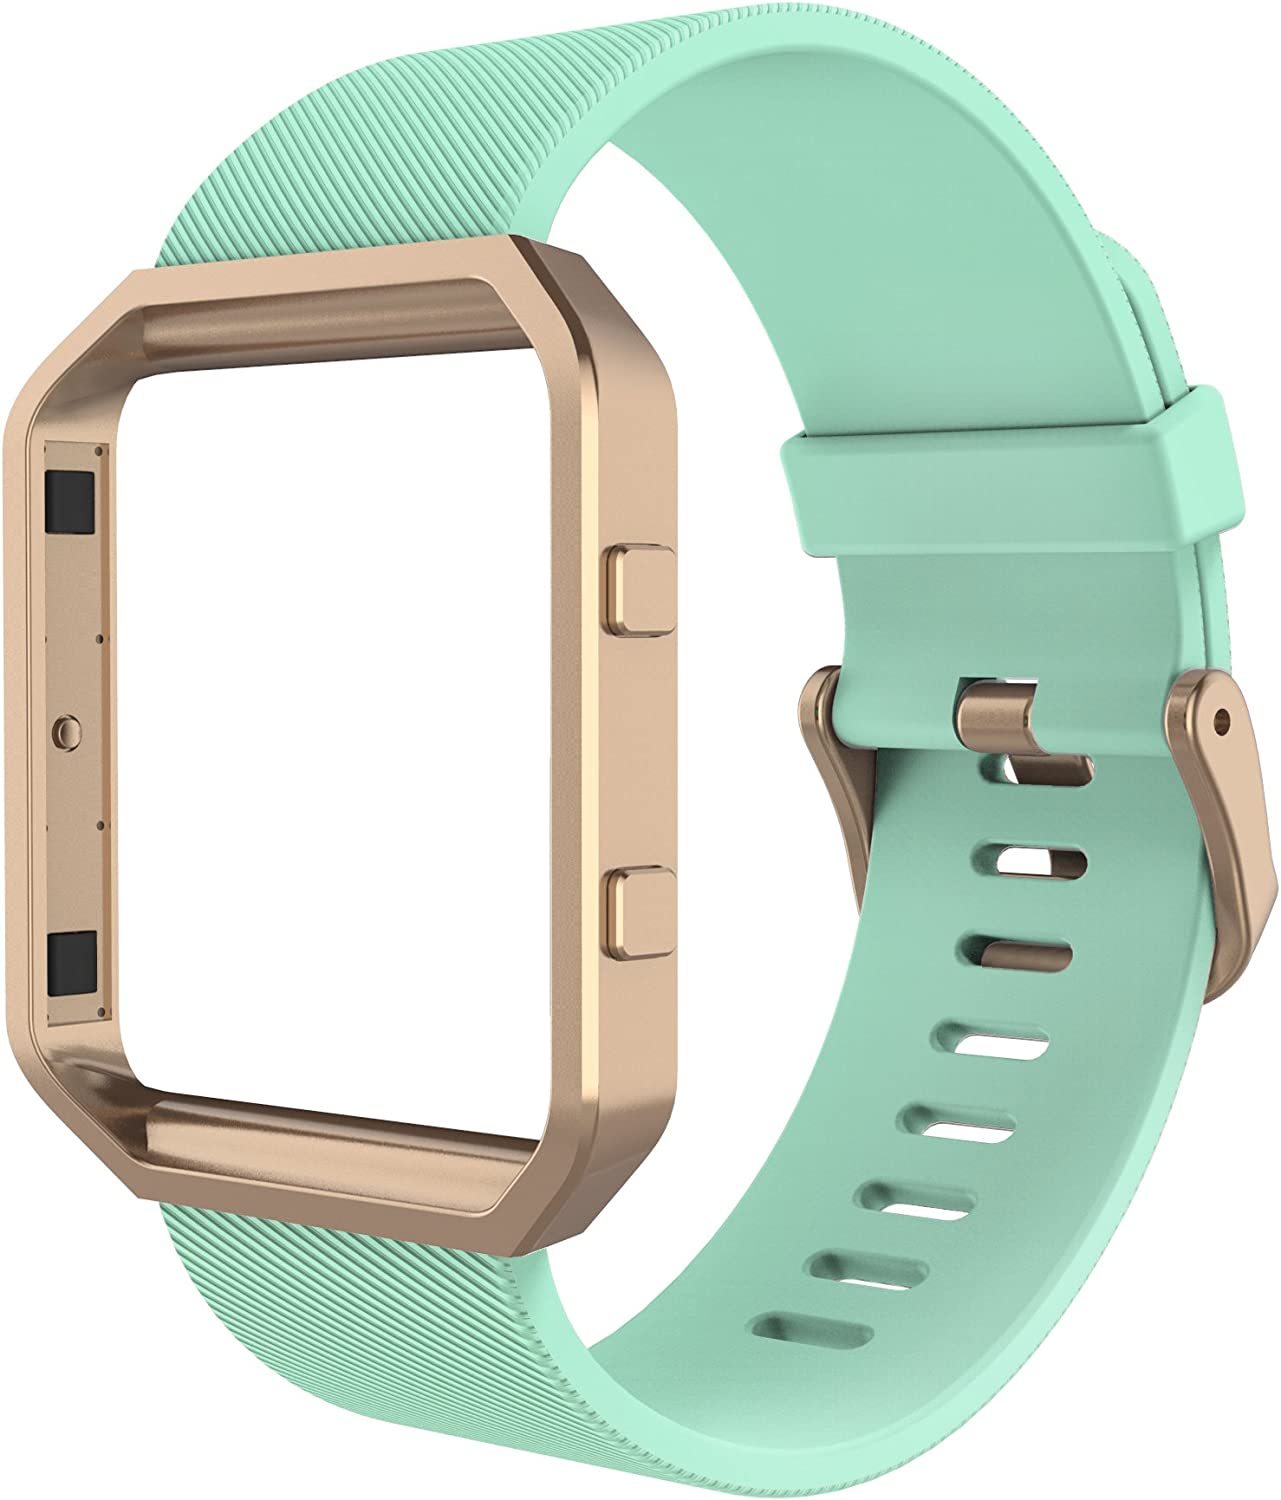 Simpeak Sport Band Compatible with Fitbit Blaze Smartwatch Sport Fitness, Silicone Wrist Band with Meatl Frame Replacement for Fitbit Blaze Men Women, Small, Green Rose Gold Frame